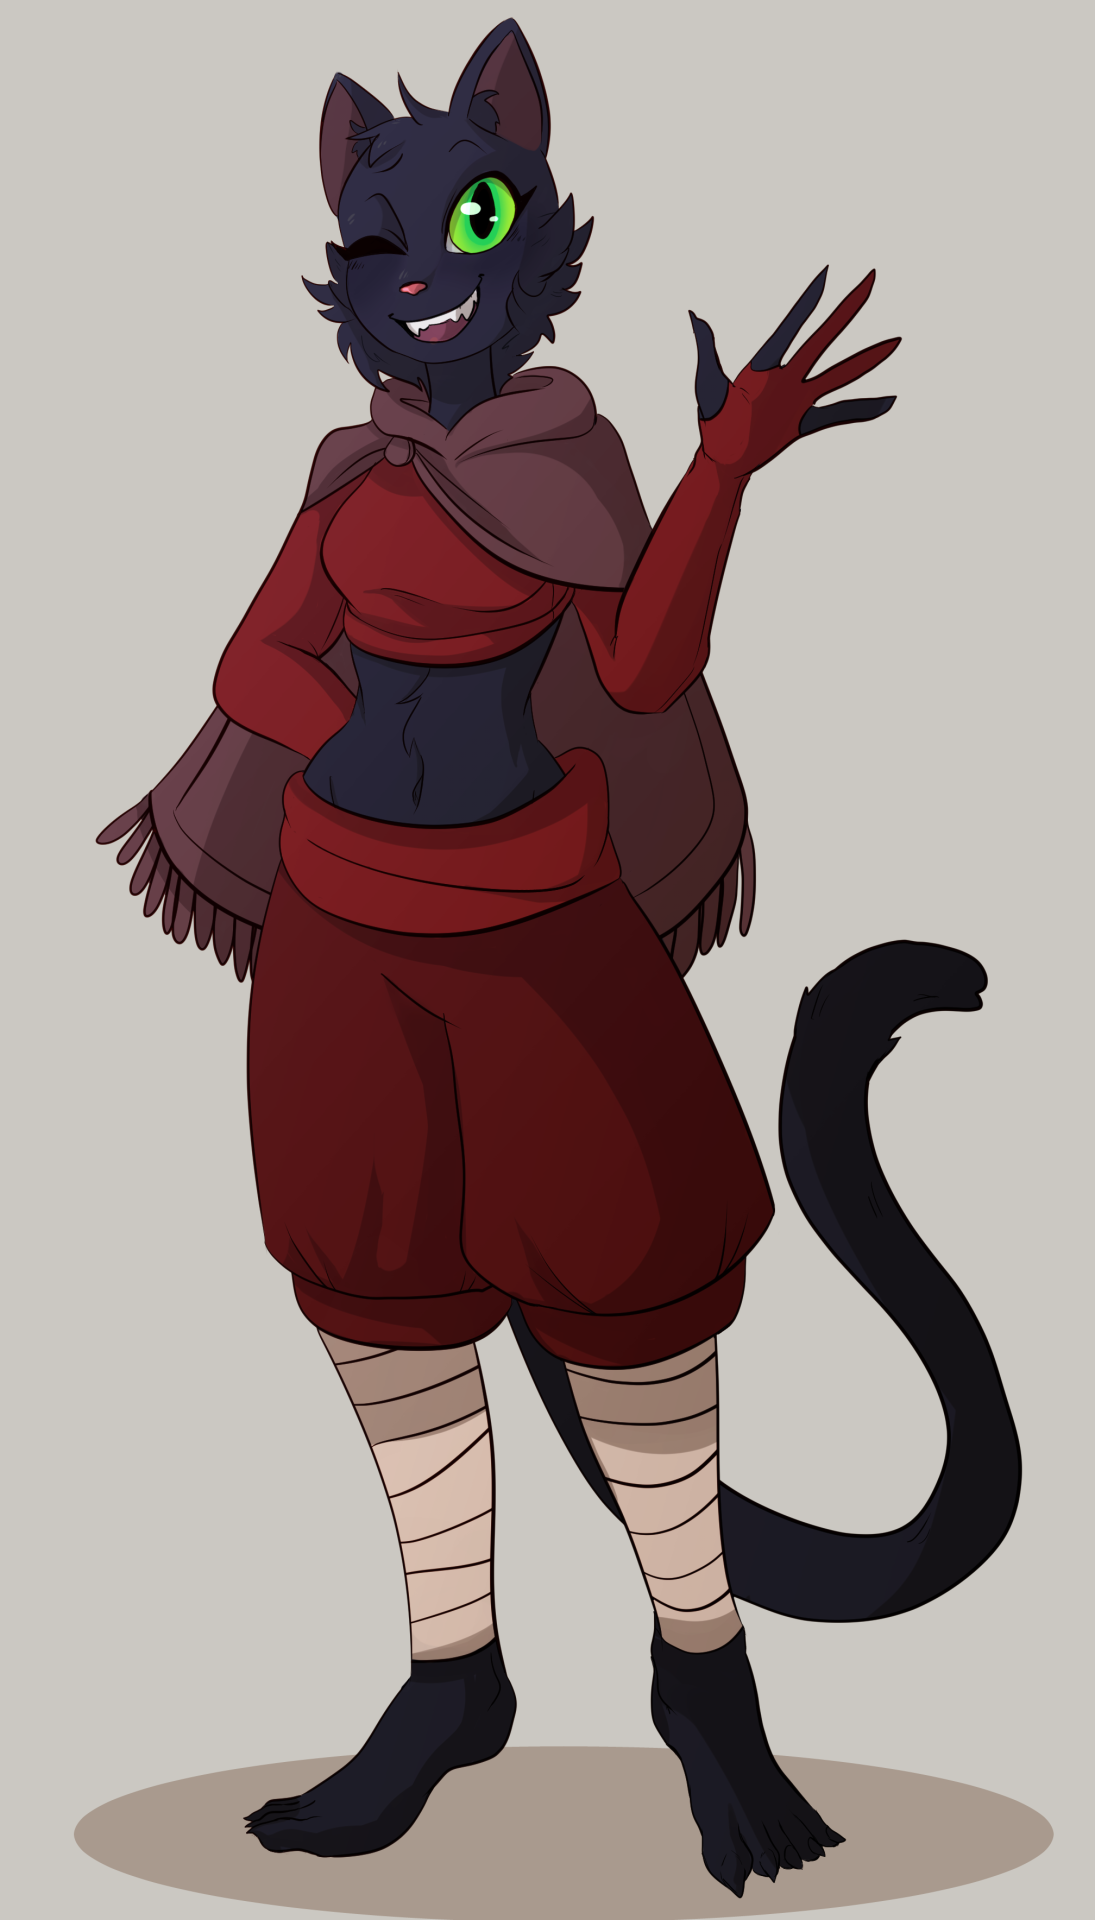 Been working on improving/refining my style. So here's my Way of the Shadow Tabaxi Monk, Pepper!! #dnd#d&d #Dungeons and Dragons #tabaxi#monk